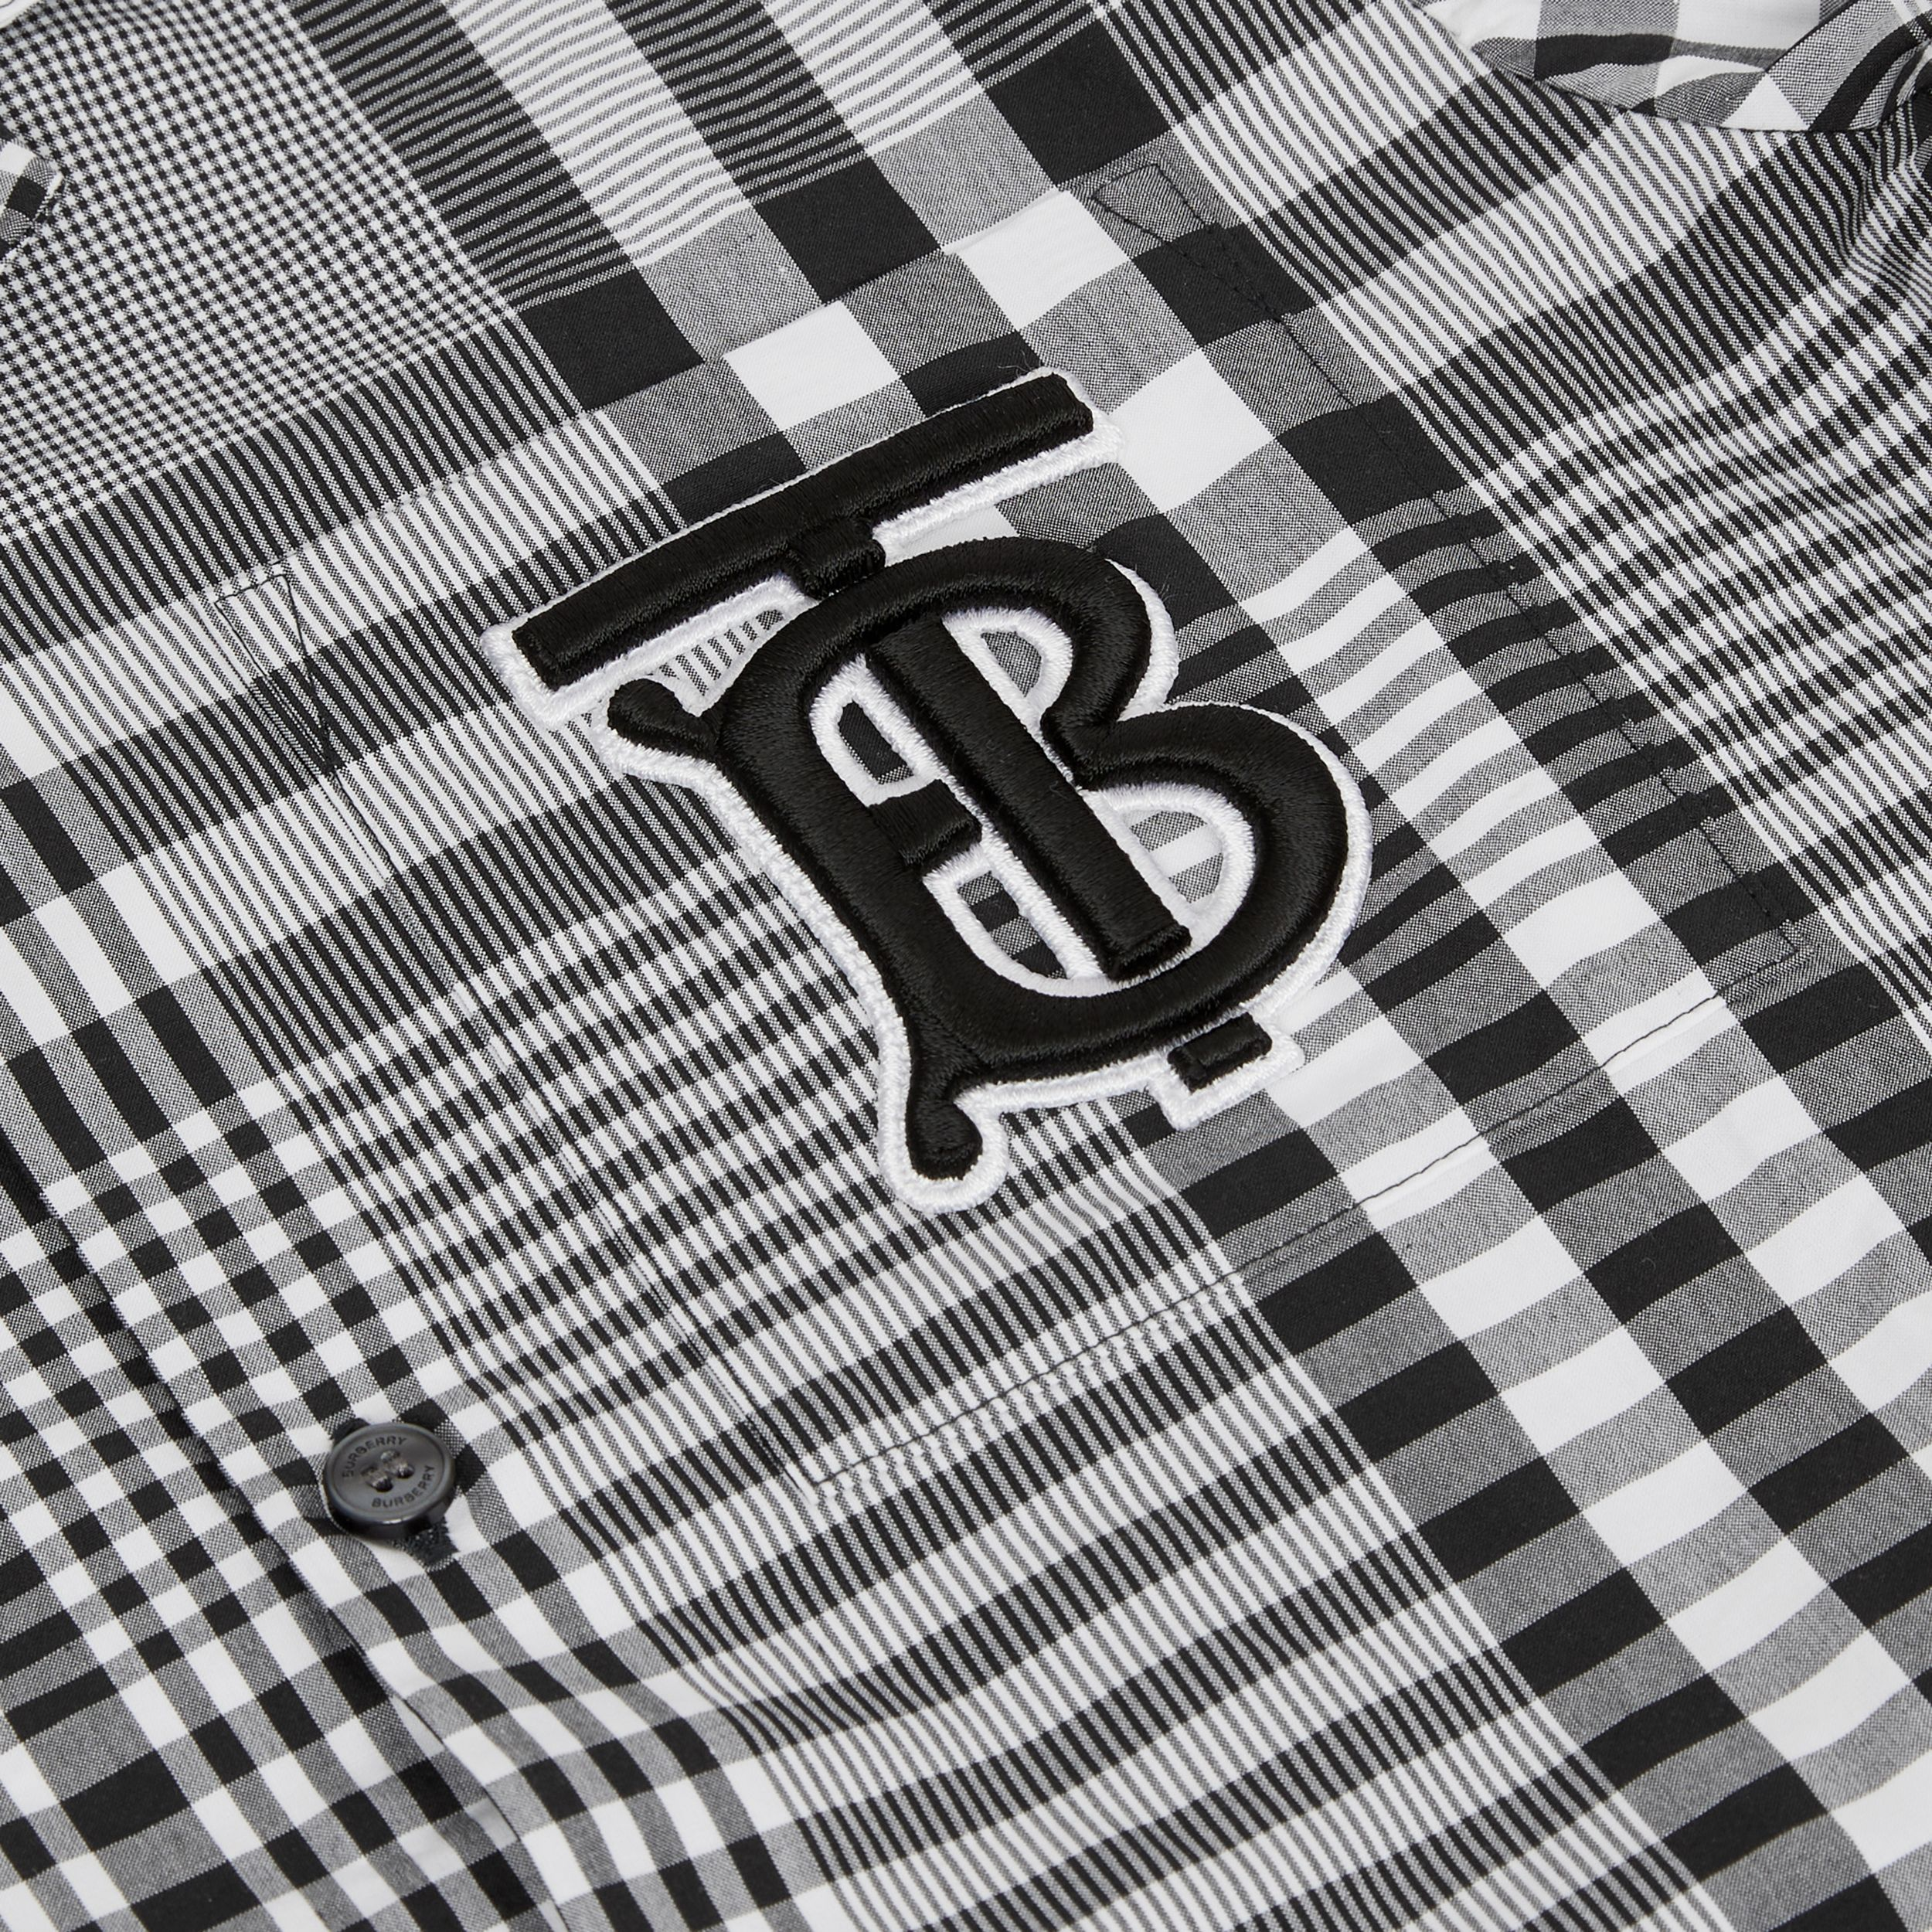 Short-sleeve Monogram Motif Check Cotton Shirt in Black | Burberry - 2